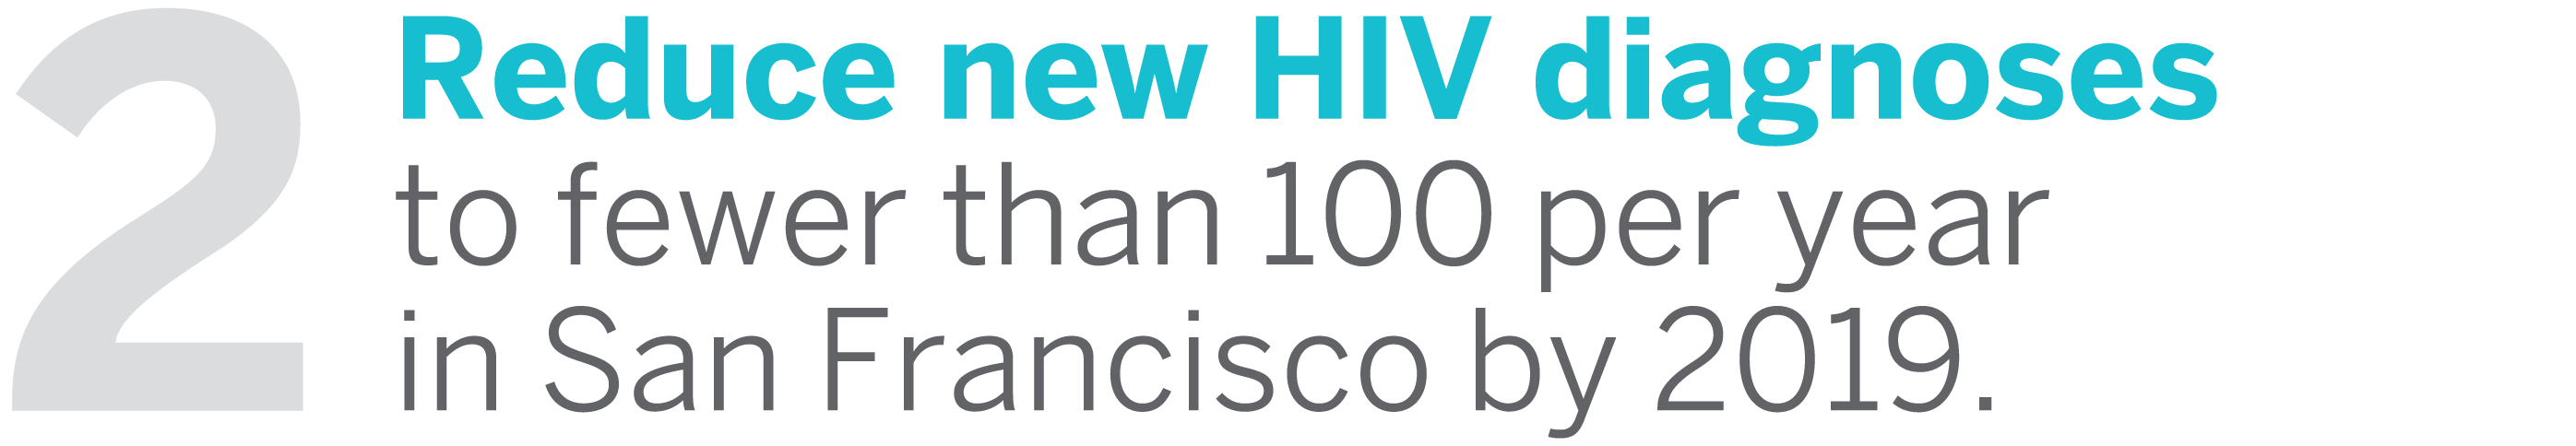 2: Reduce new HIV diagnoses to fewer than 100 per year in San Francisco by 2019.